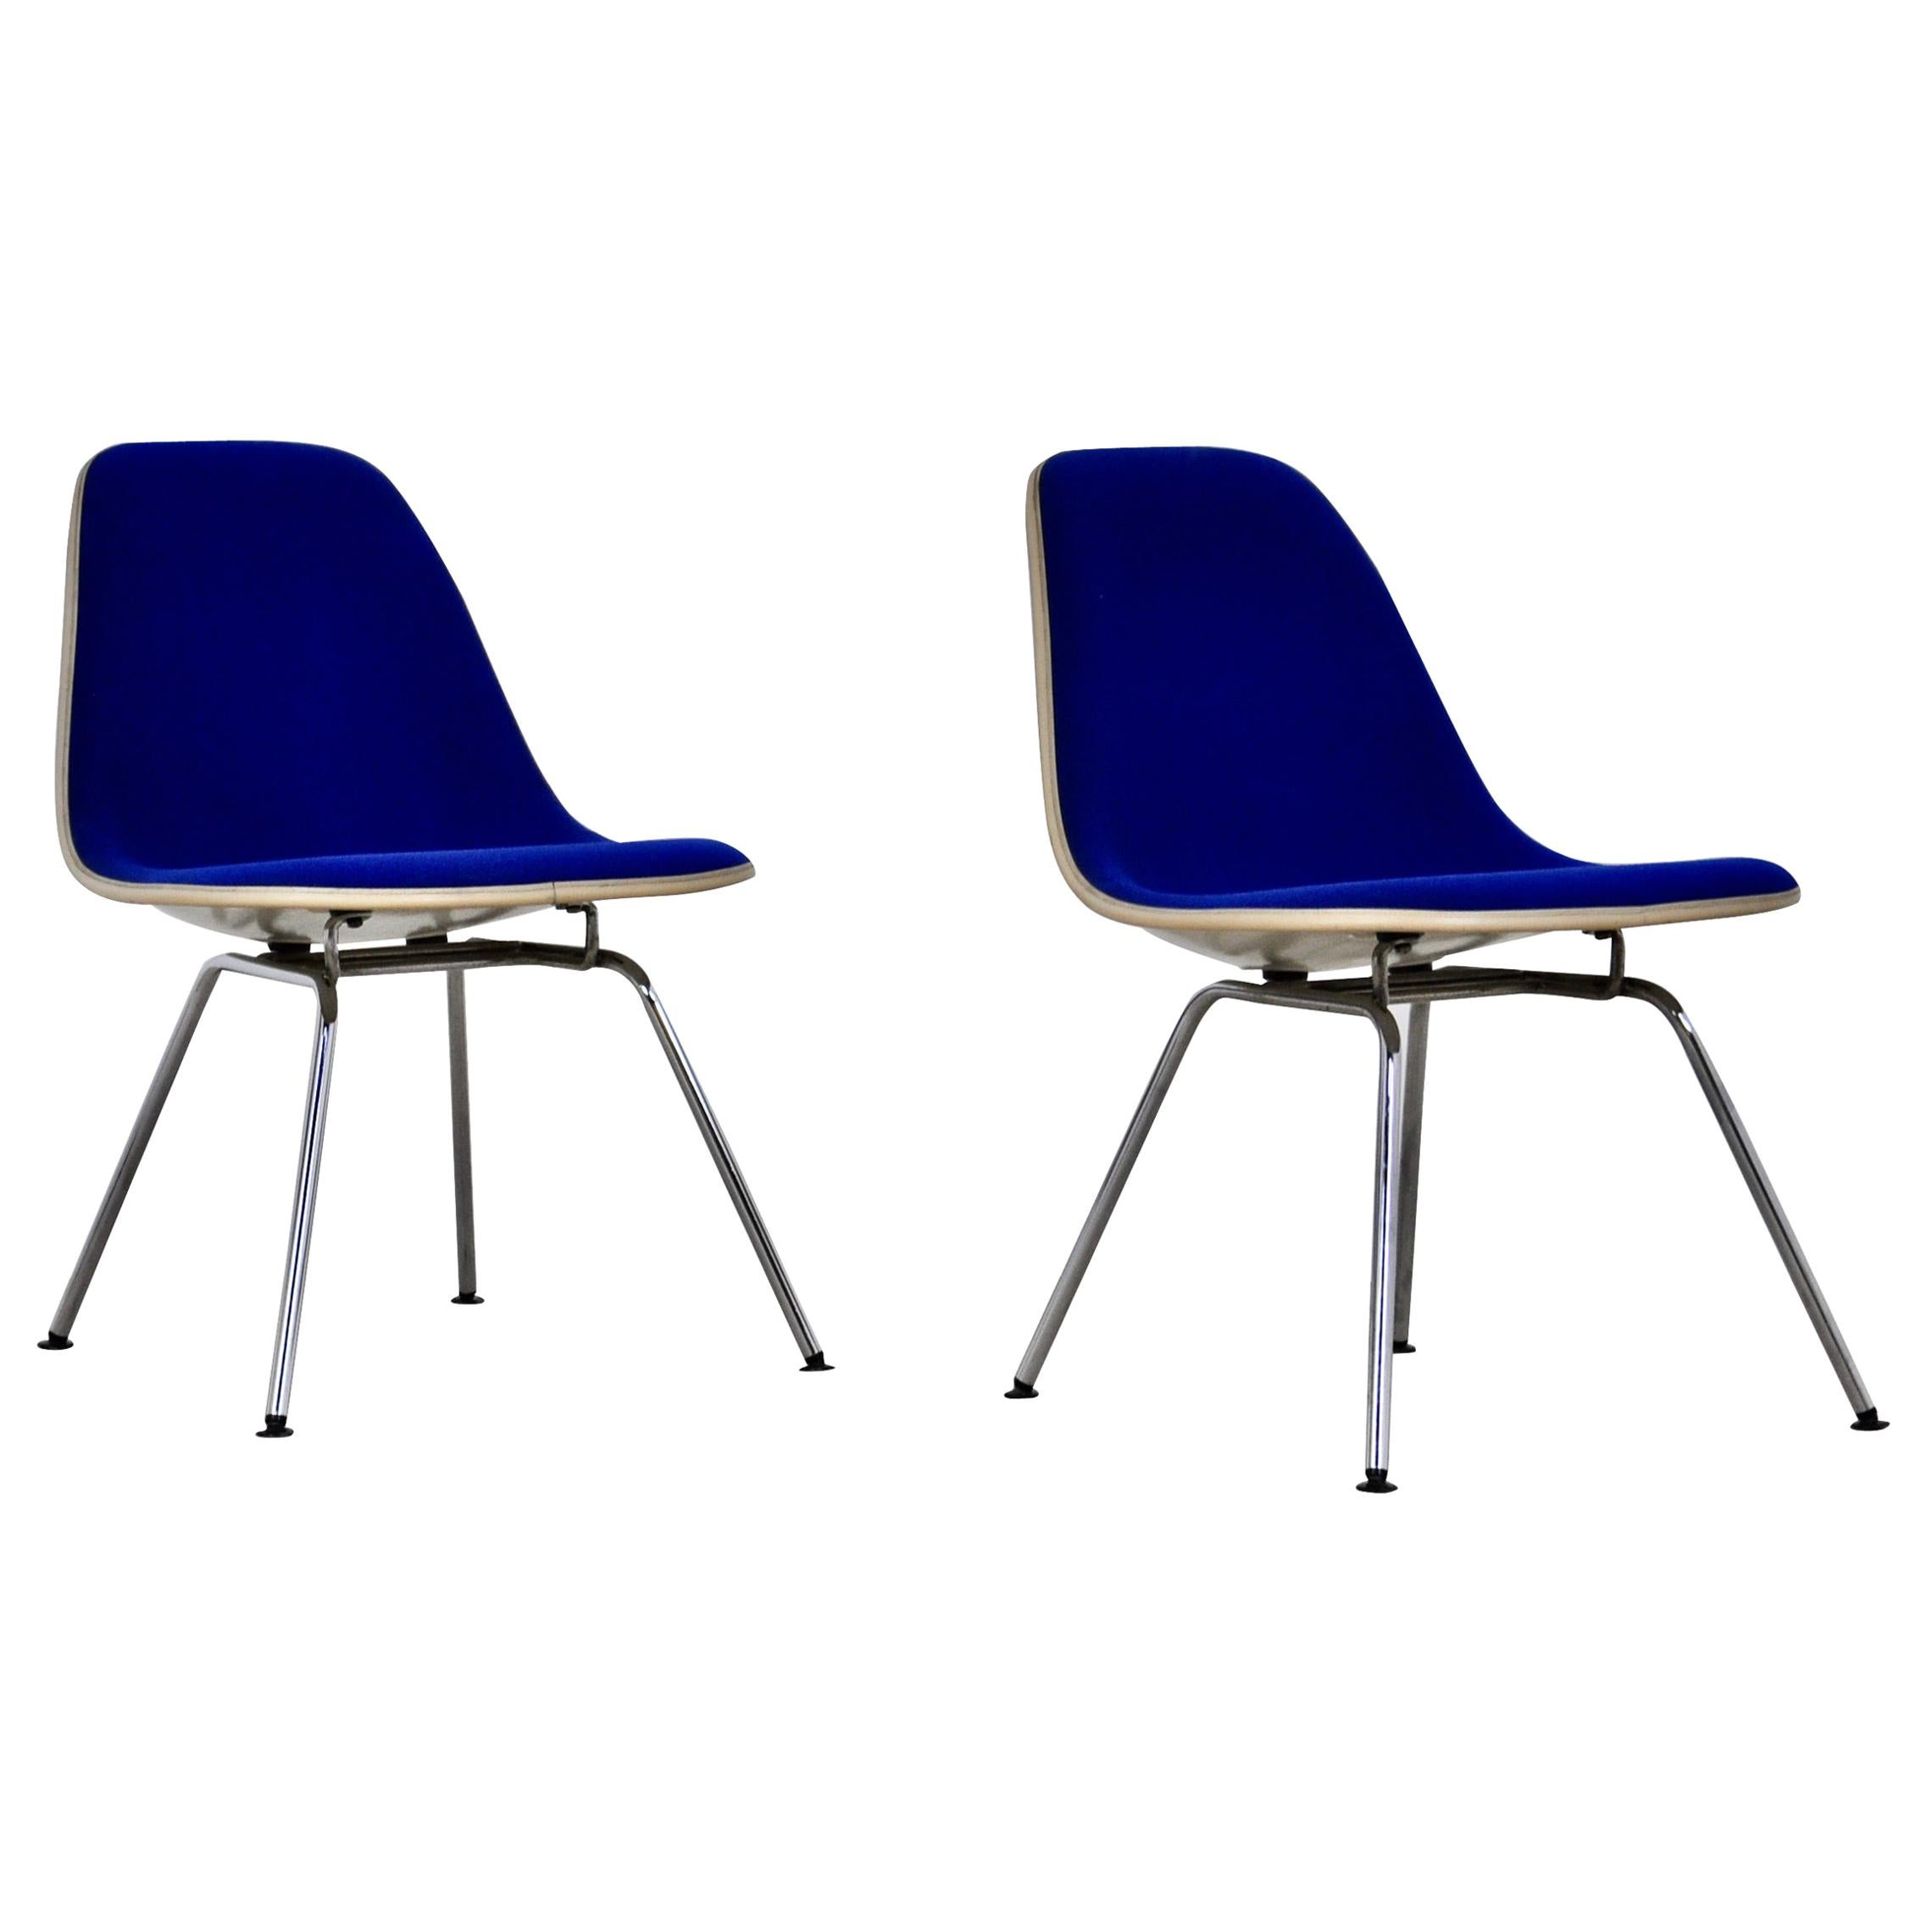 Chairs by Charles and Ray Eames for Herman Miller, 1960s